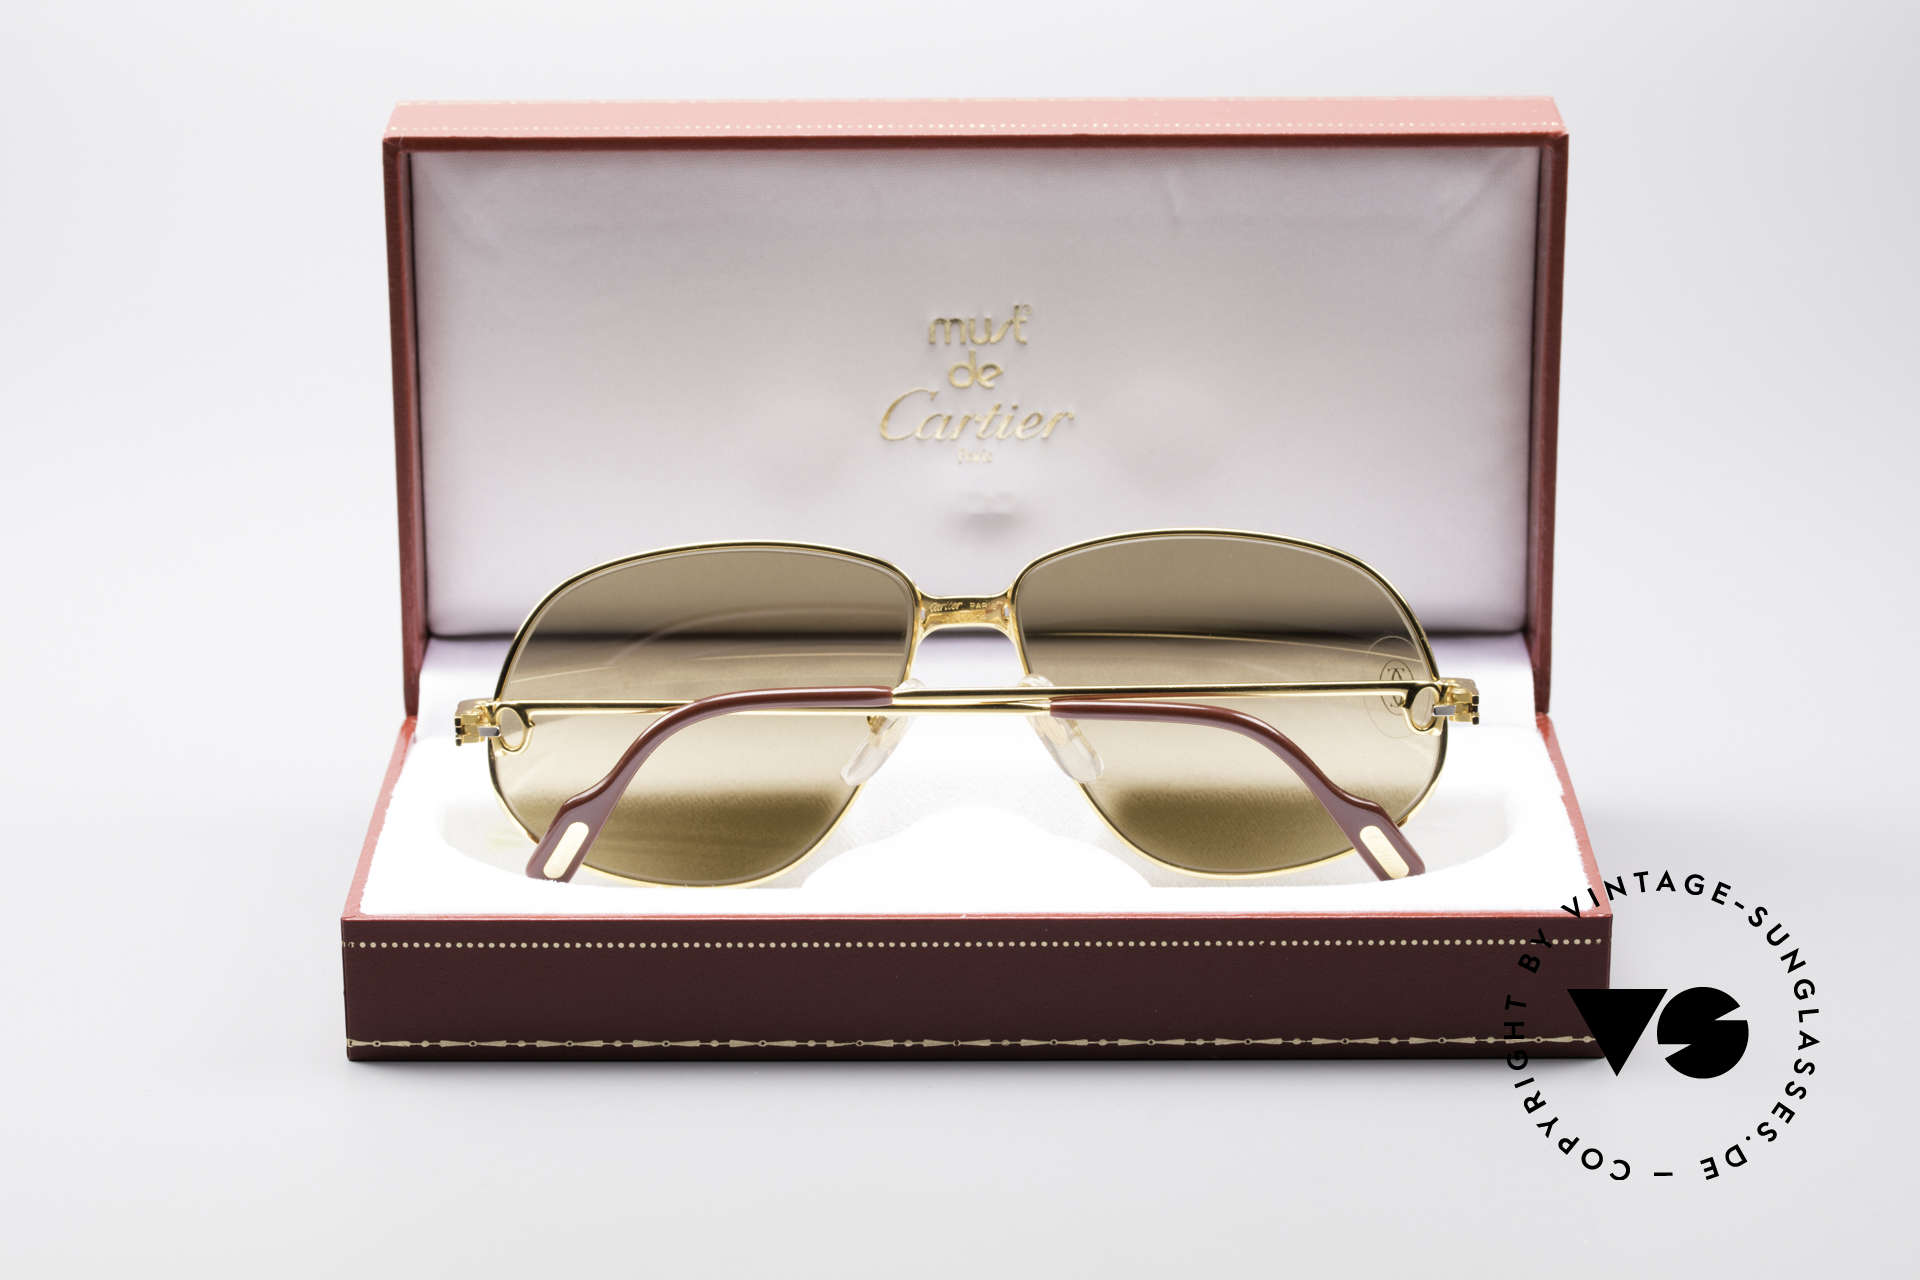 Cartier Panthere G.M. - L Rare Luxury Sunglasses, unworn with orig. packing (hard to find in this condition), Made for Men